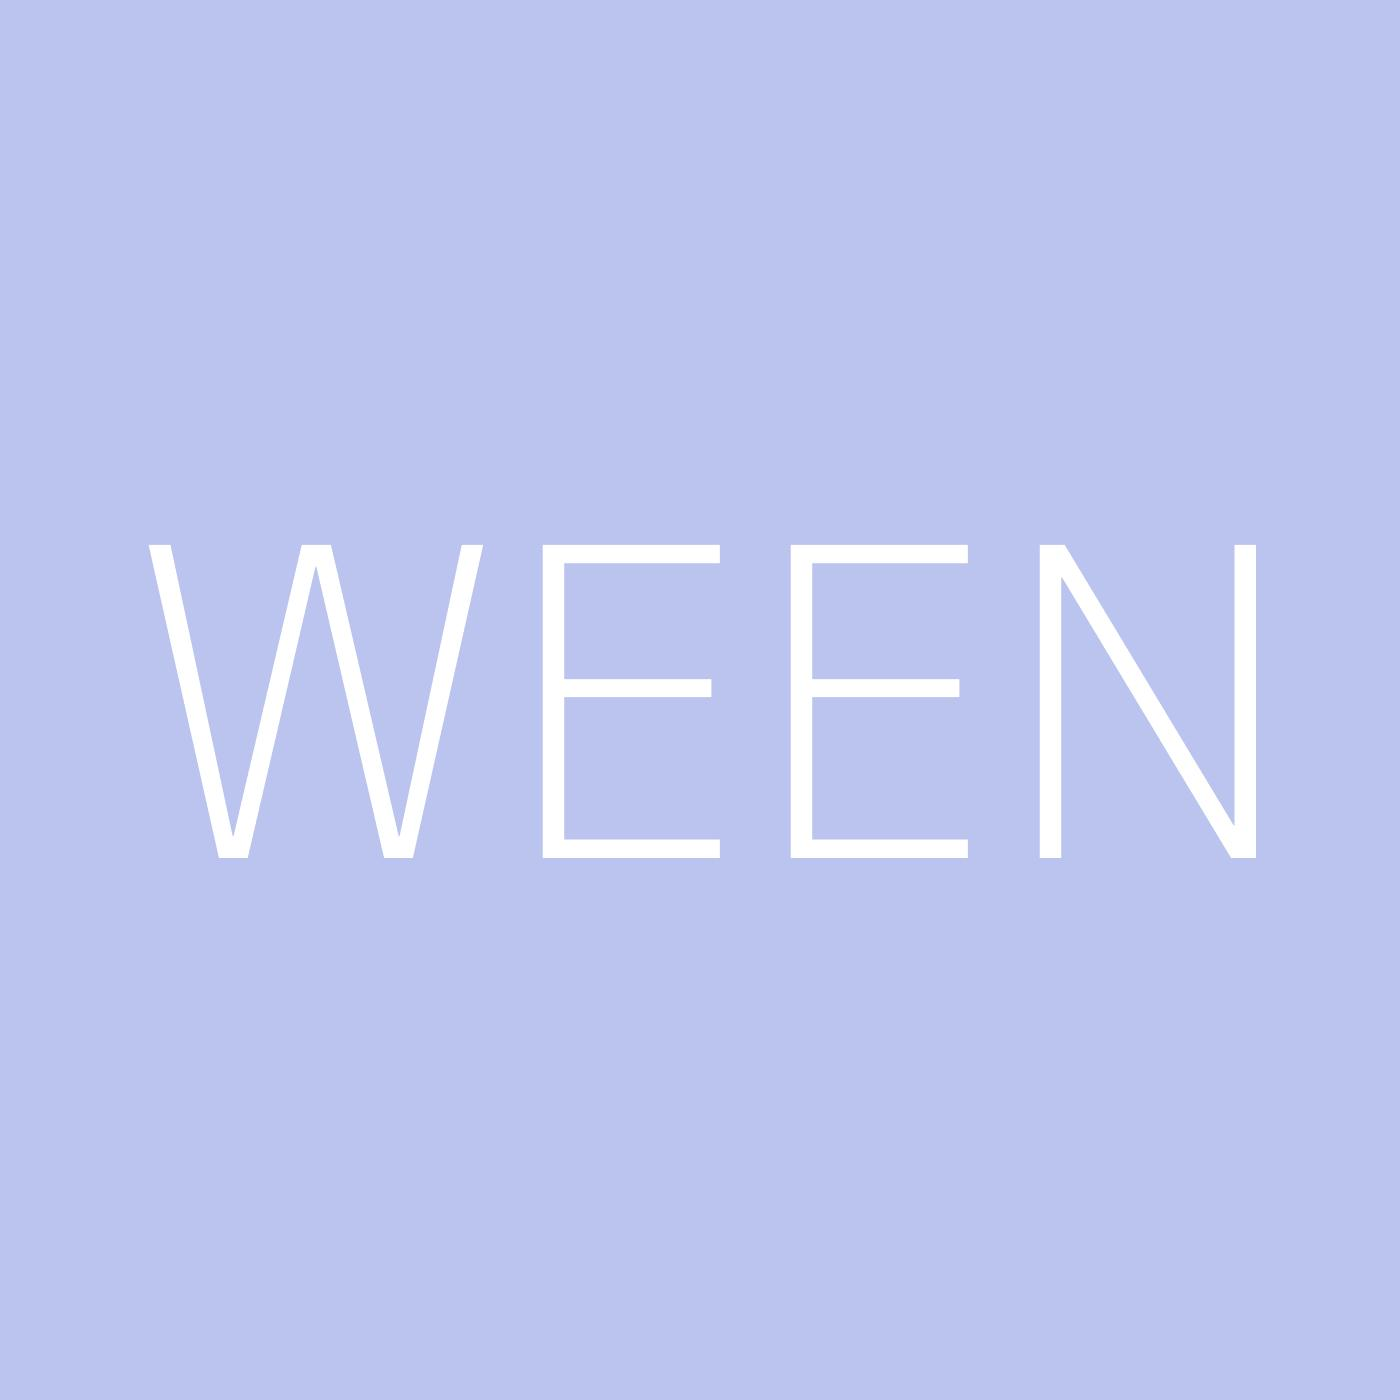 Ween Playlist Artwork